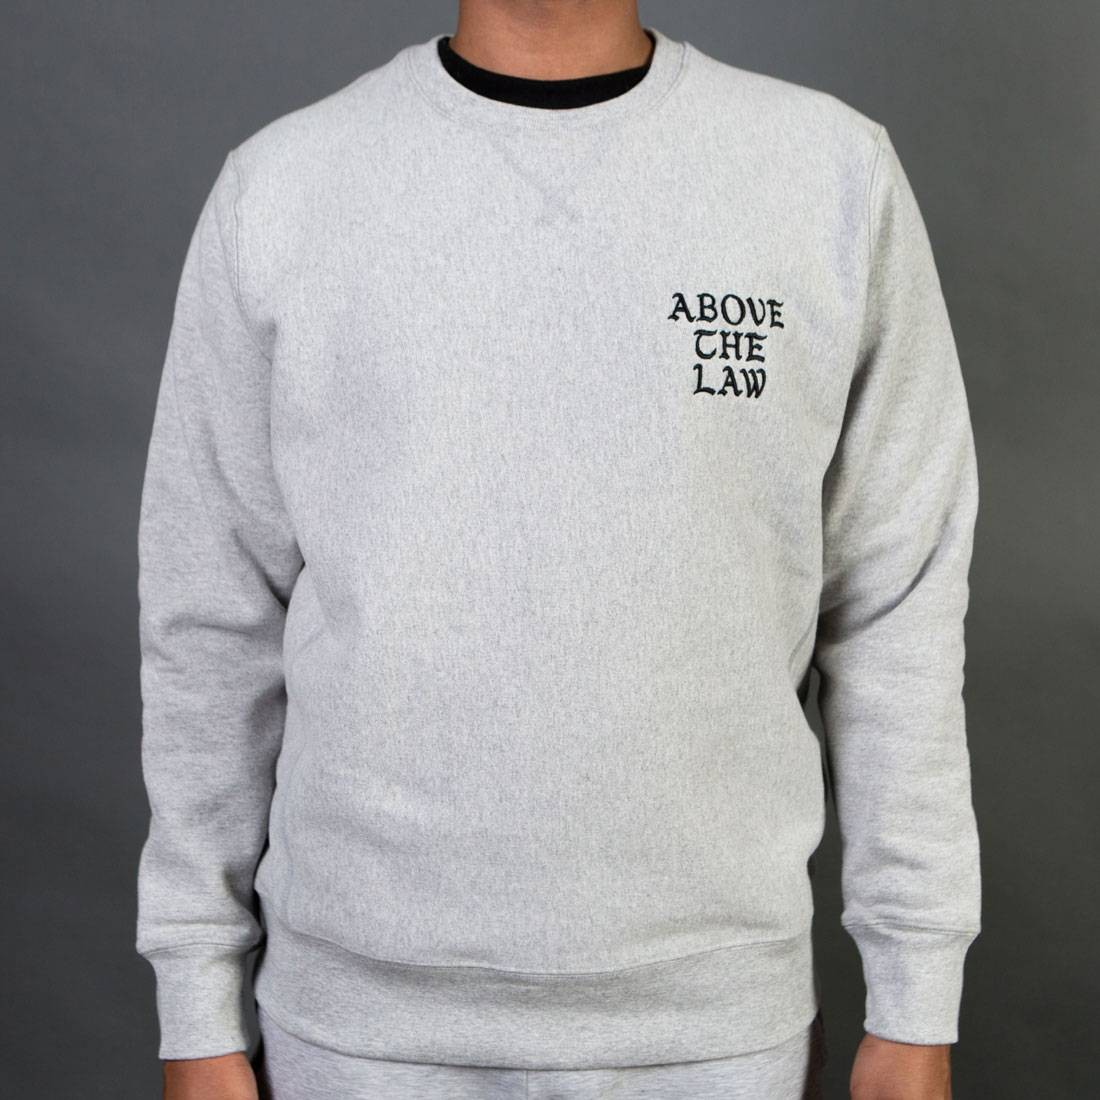 Acapulco Gold Men Above The Law Crewneck Sweater (gray)